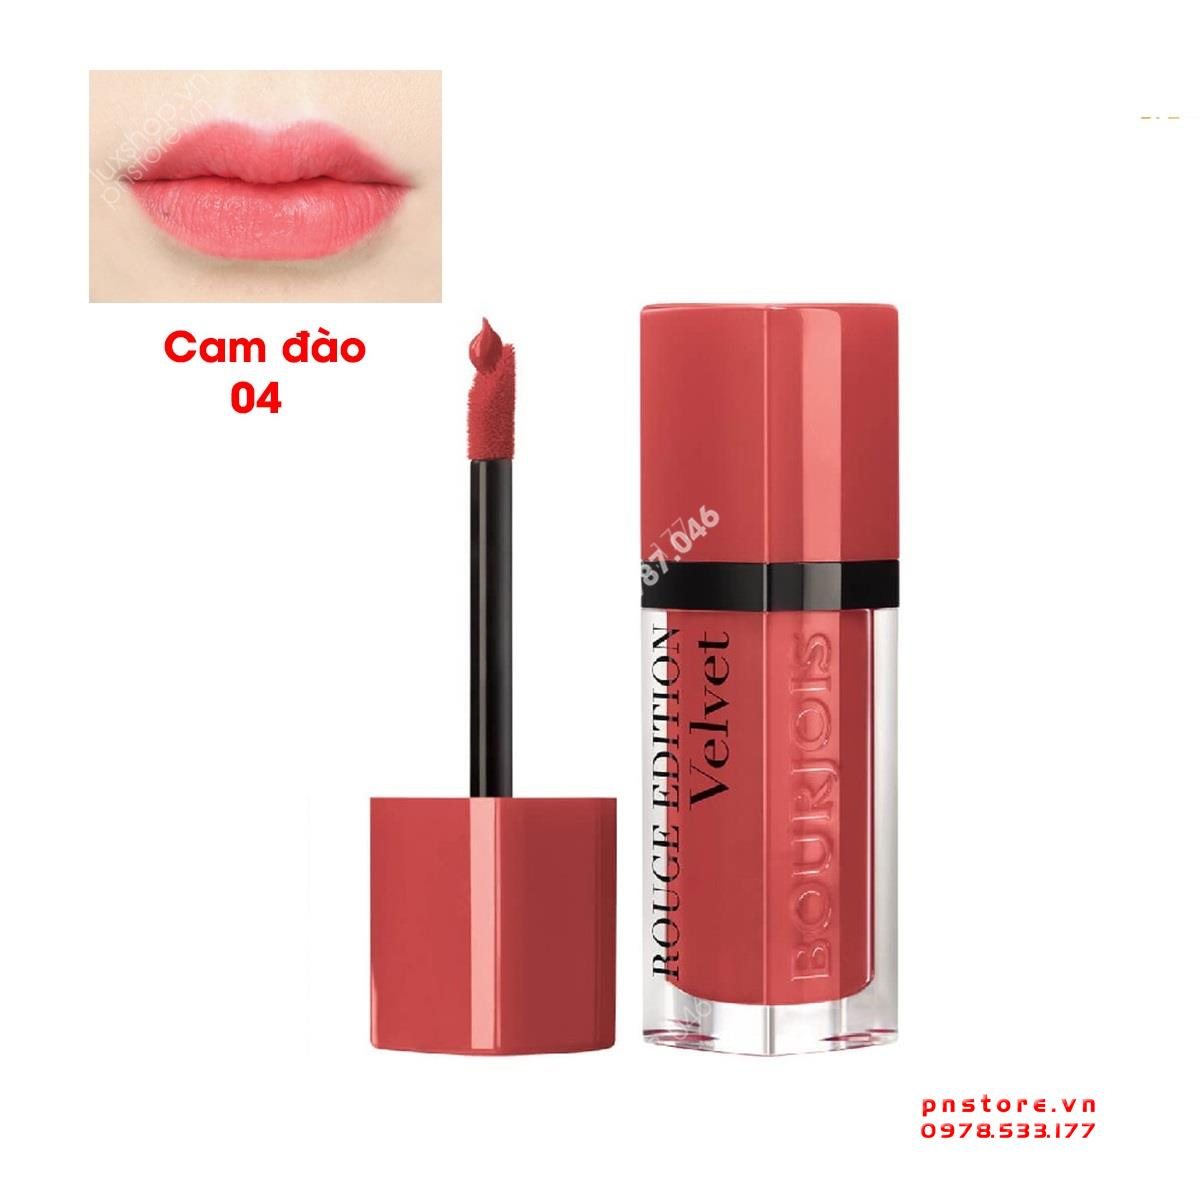 son-bourjois-velvet-04-peach-club-mau-cam-dao-chinh-hang-l68175